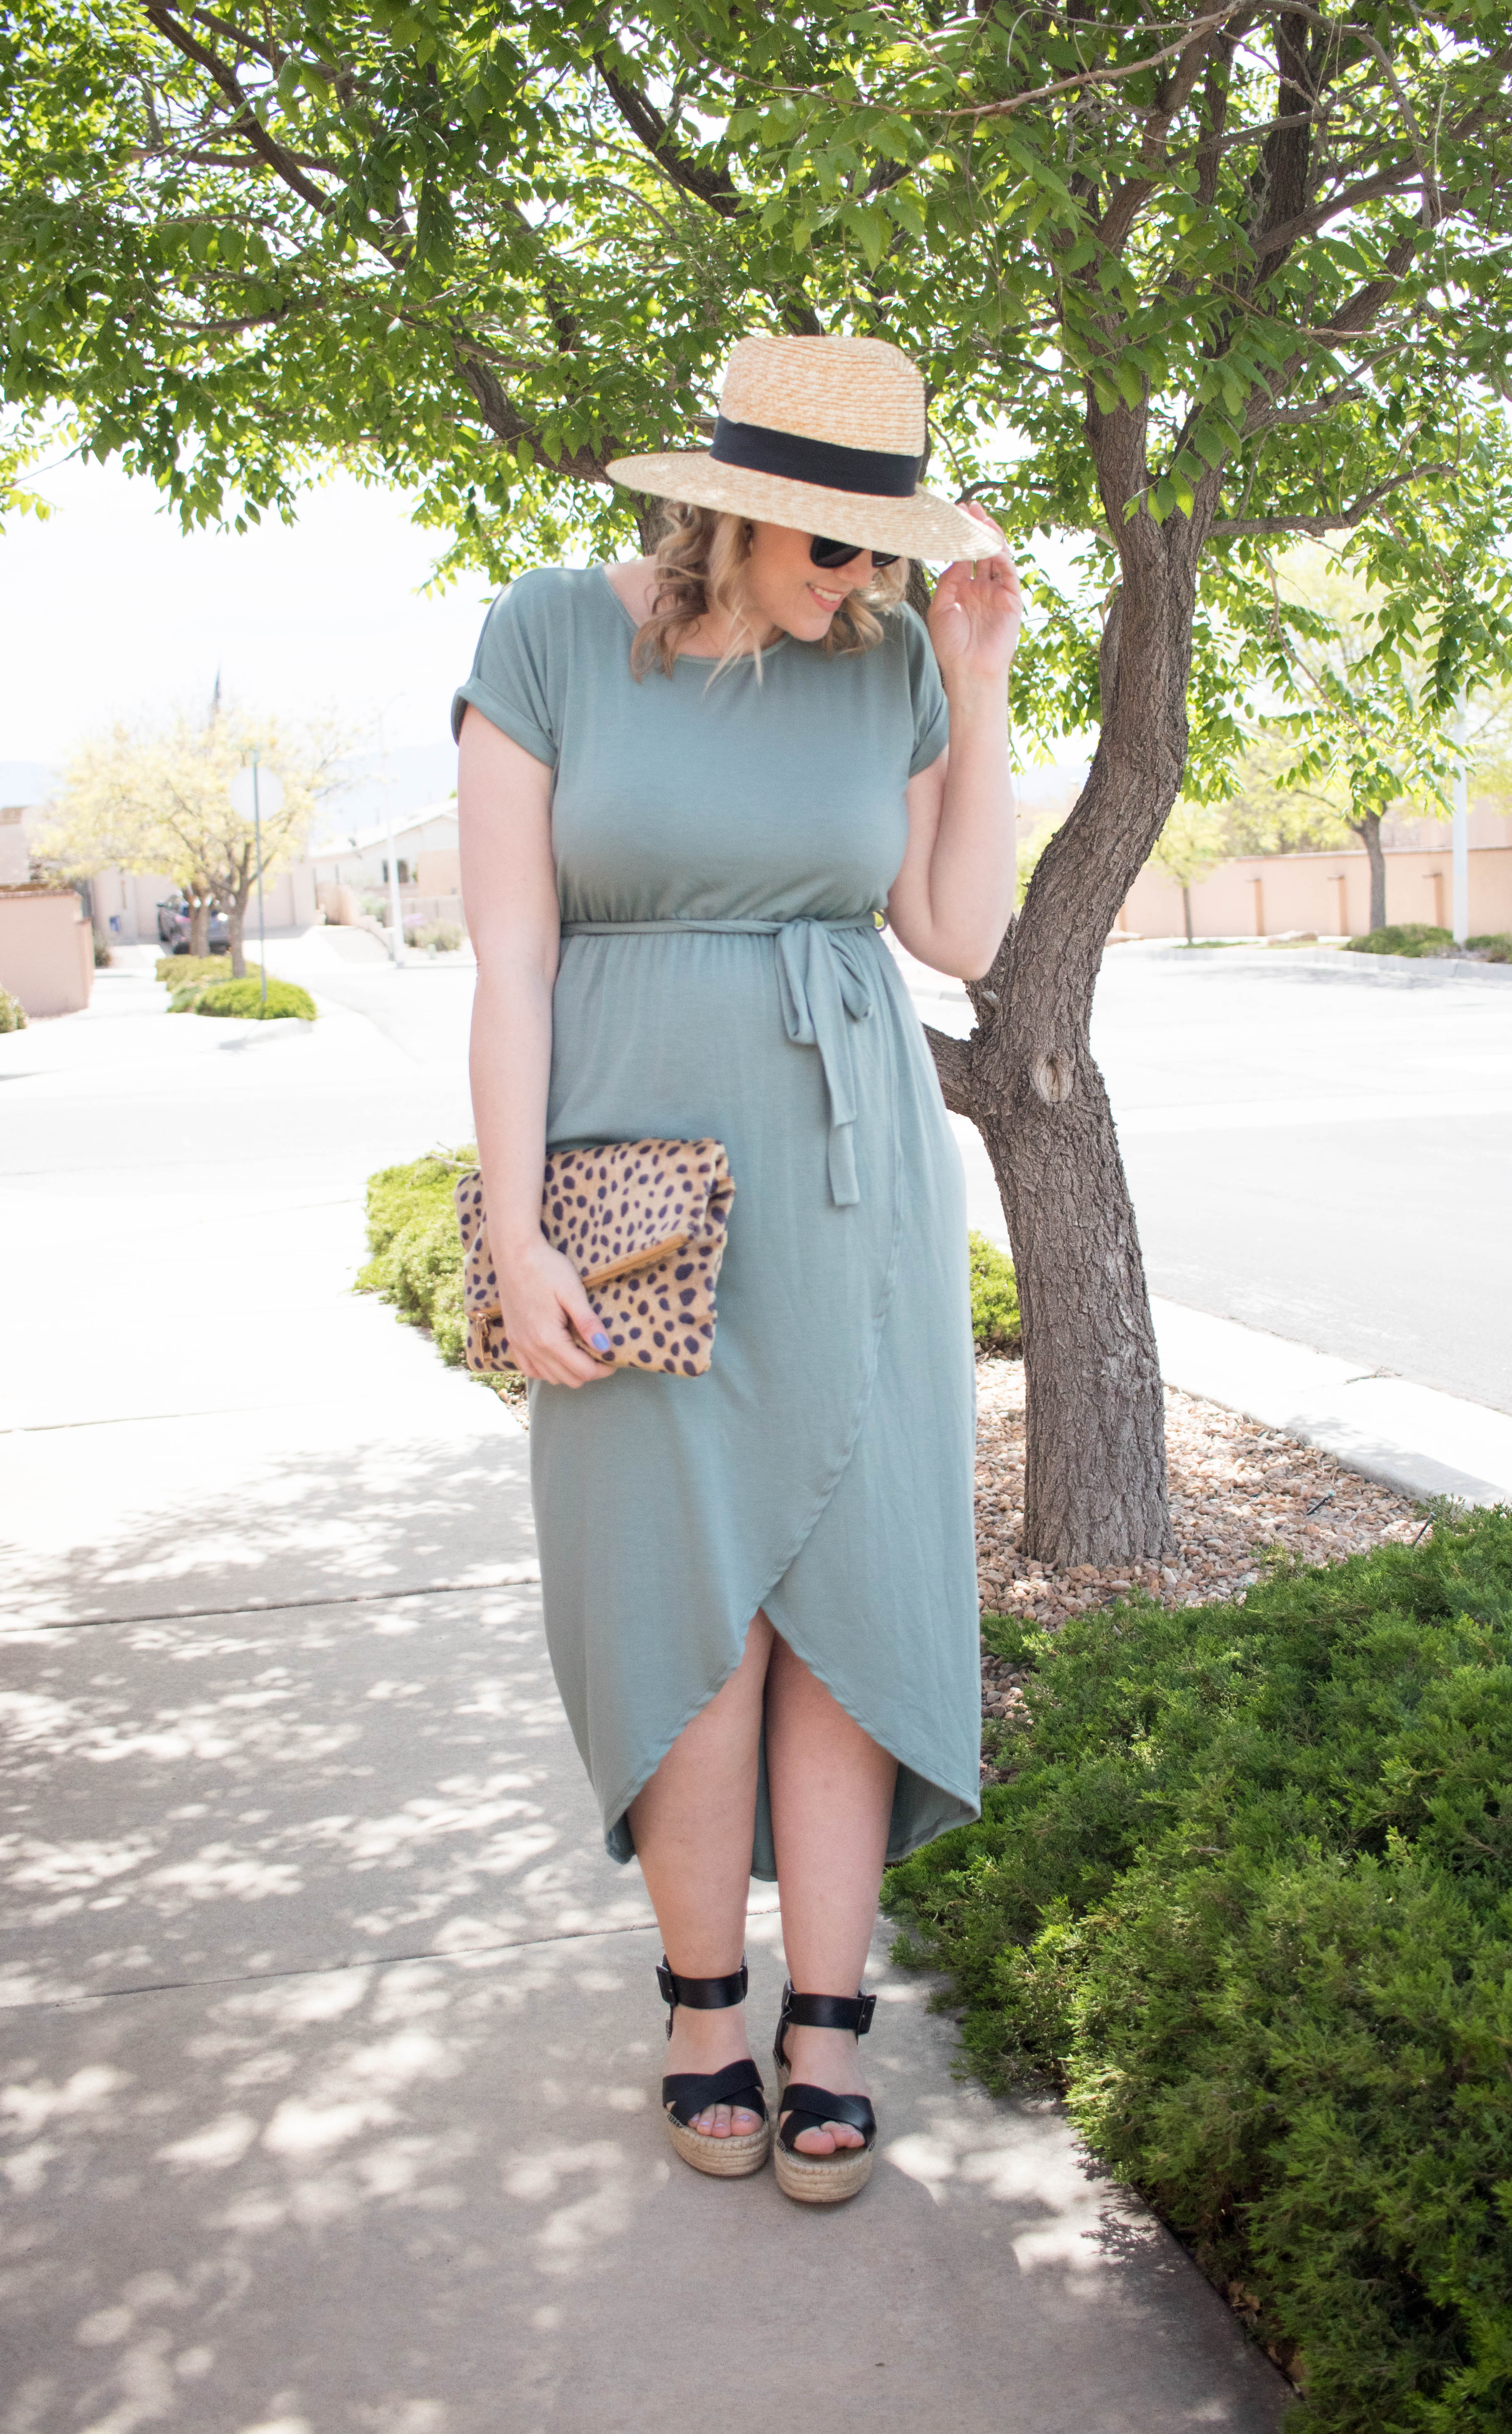 how to style a straw hat for spring #springstyle #theweeklystyleedit #fashionlinkup